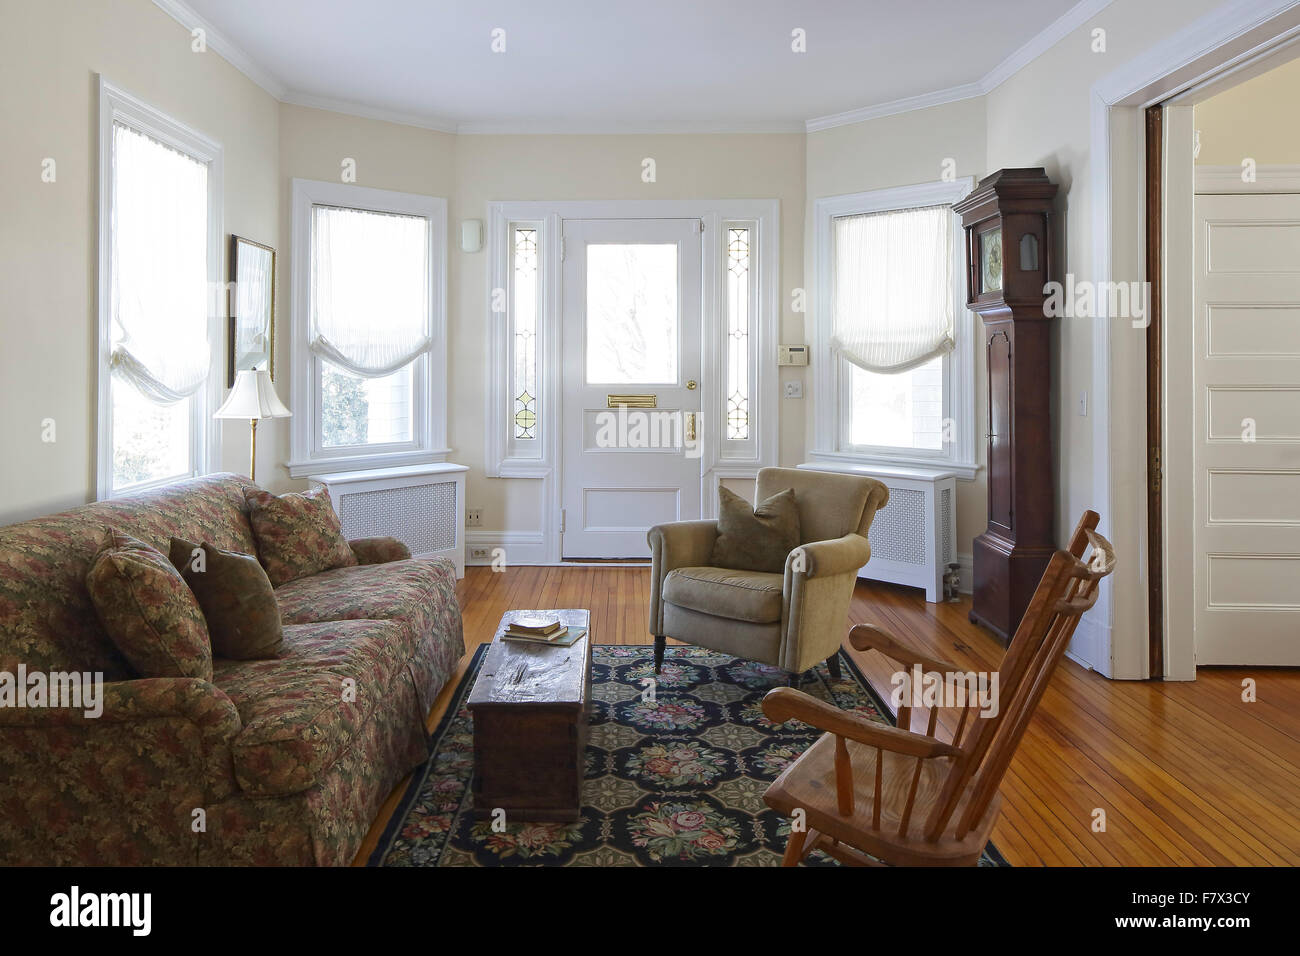 Living Room Victorian House Main Reception Room Living Room Parlor With View Of Front Stock